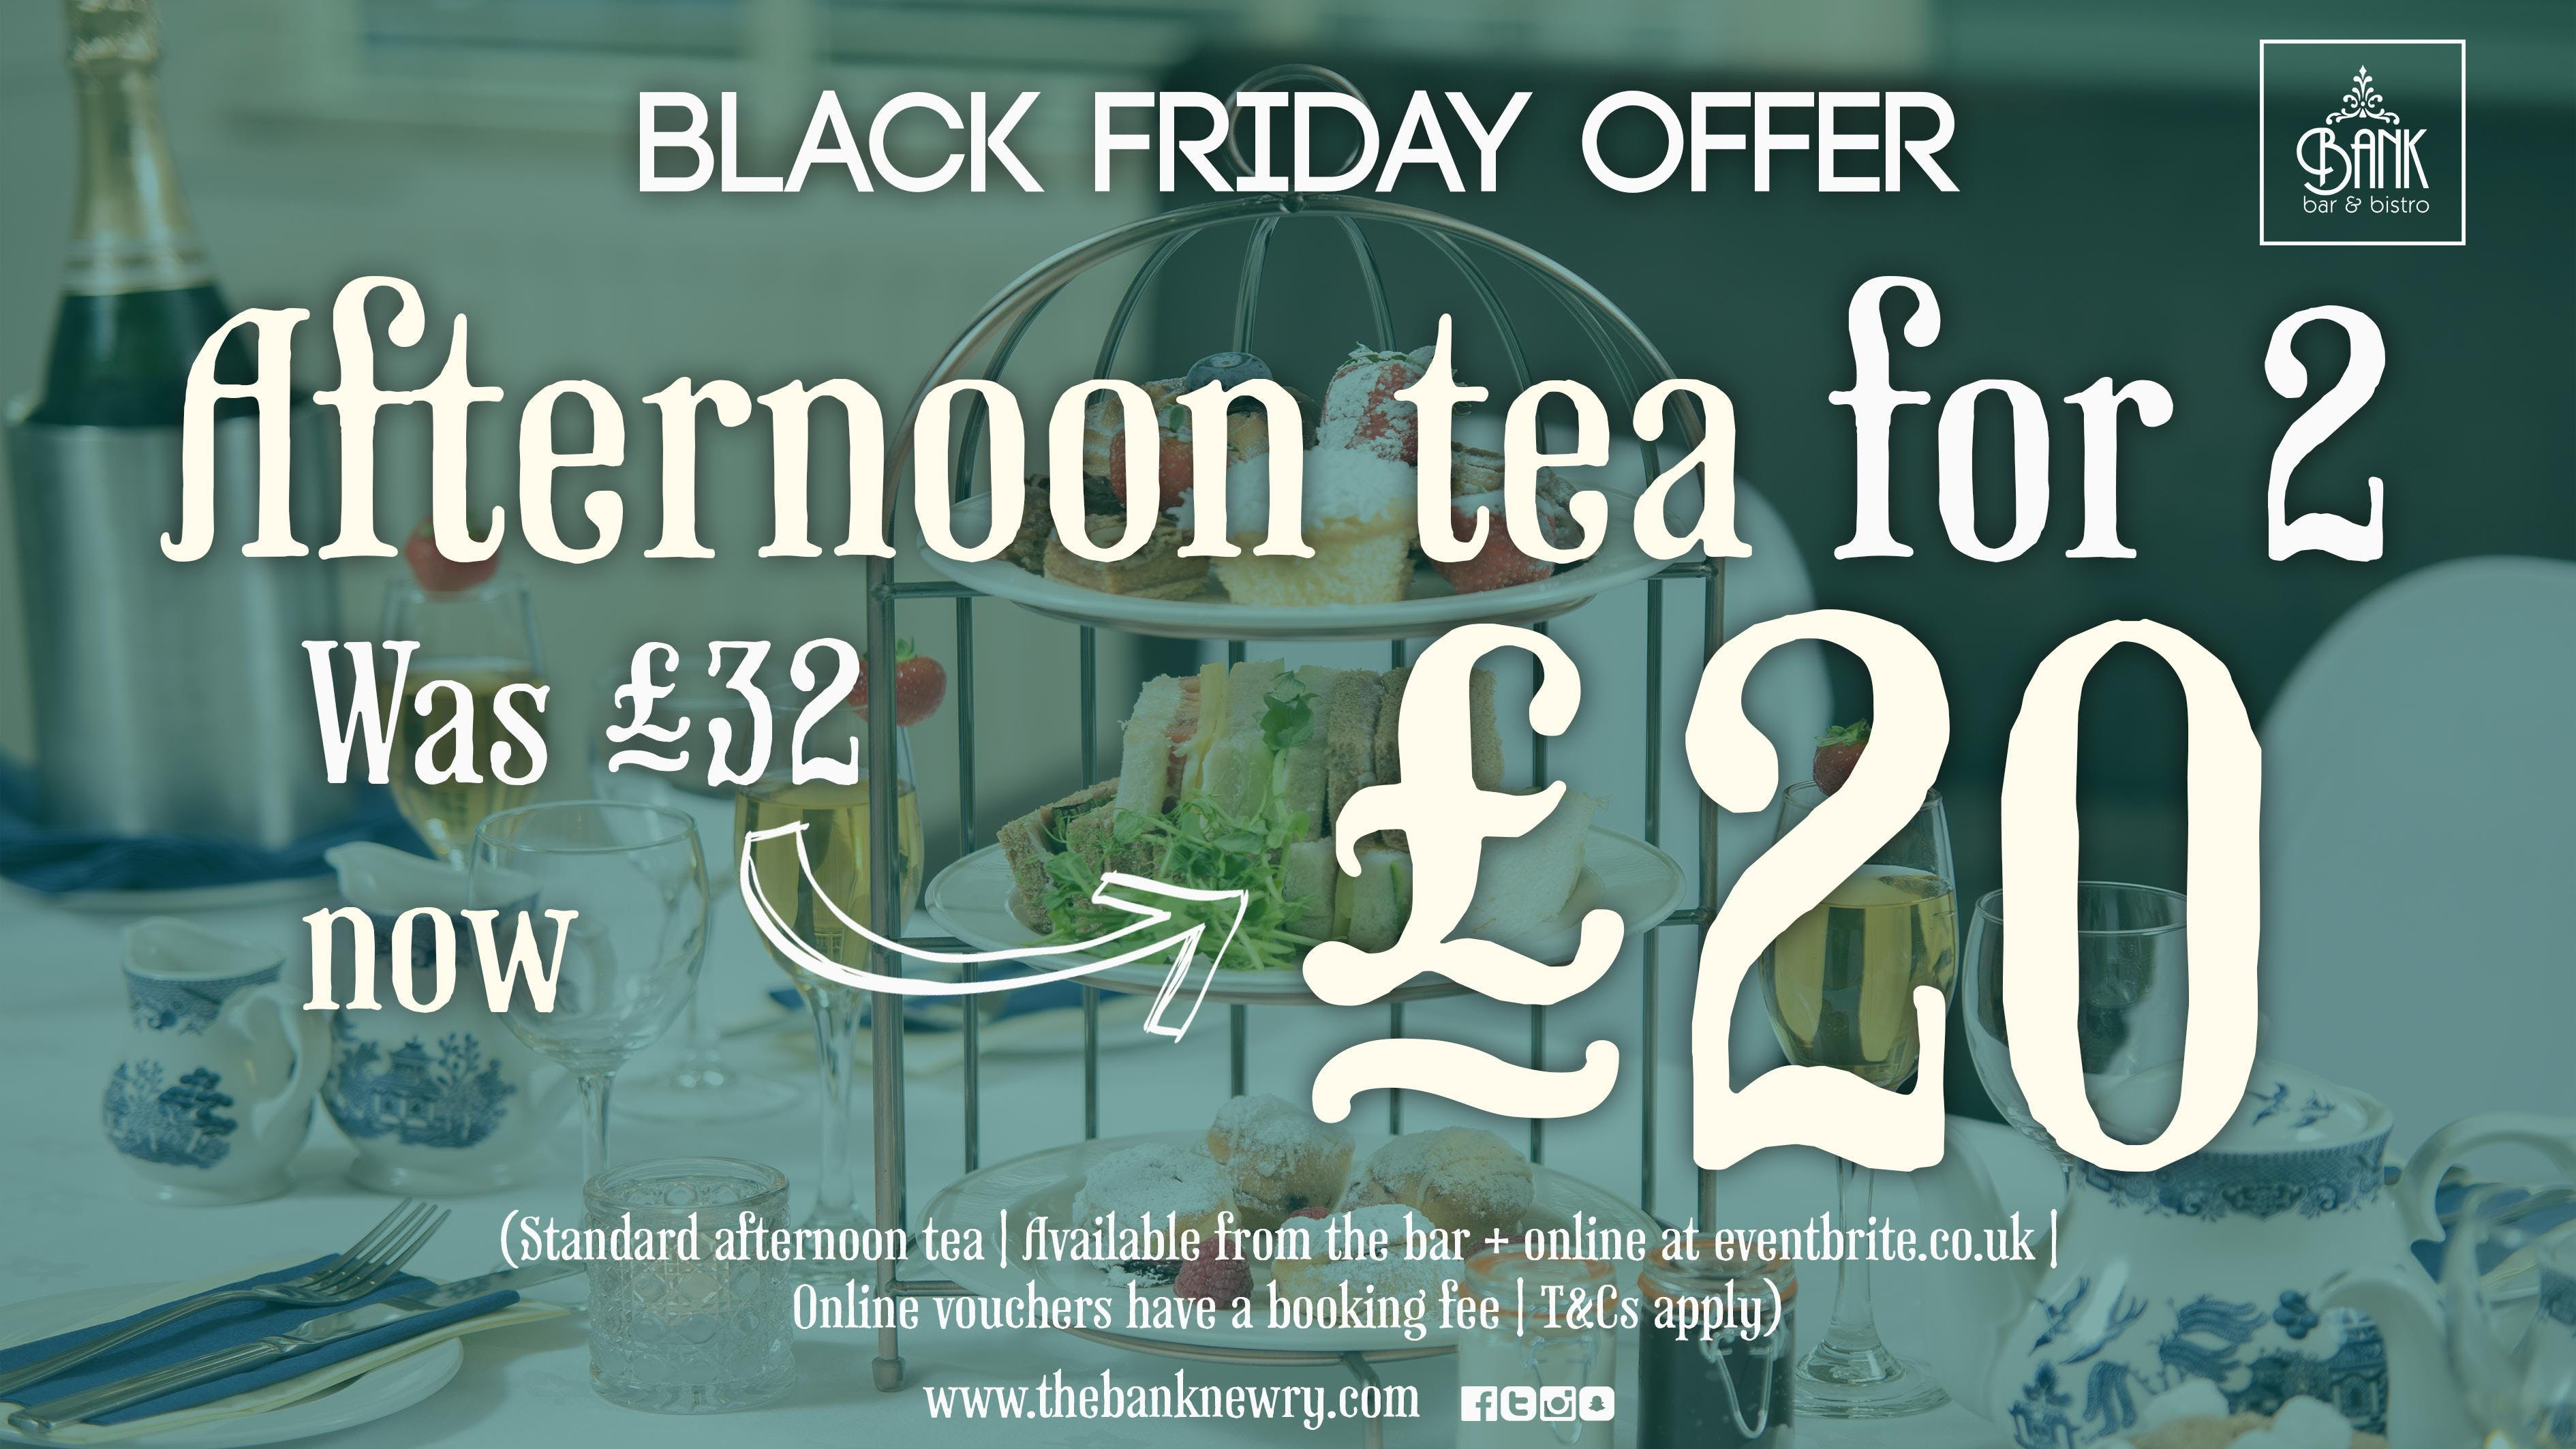 Black Friday sale offer - Afternoon tea for 2